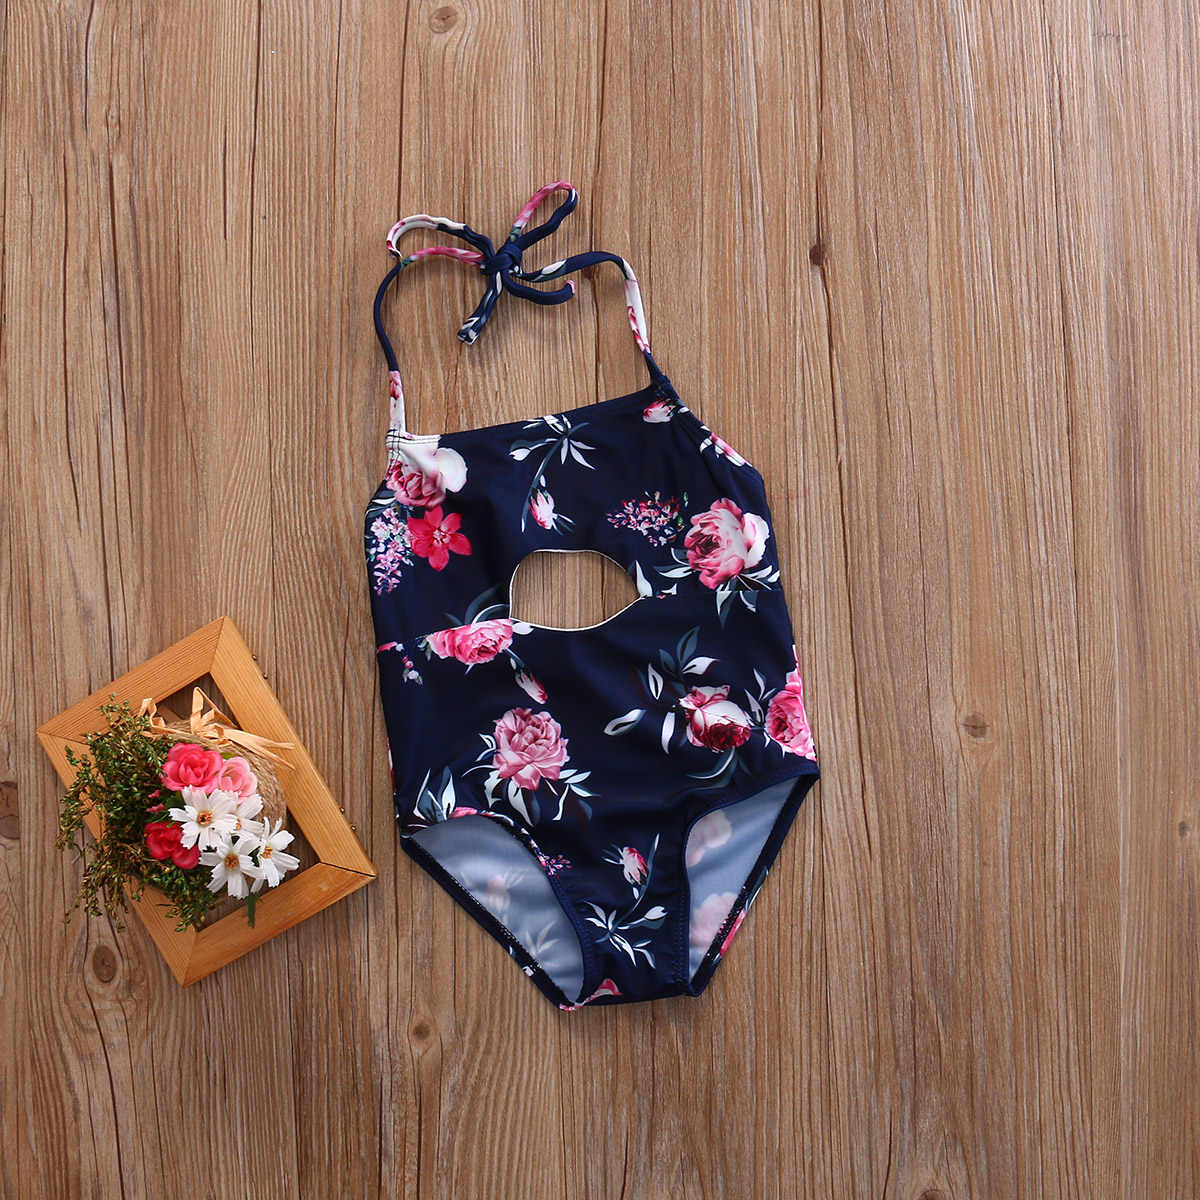 1e3b6ce7c1ebf ... Toddler Baby Girls Kids Swimsuit Bathing Tankini Bikini Set Swimwear  Beachwear Black Floral Print ...